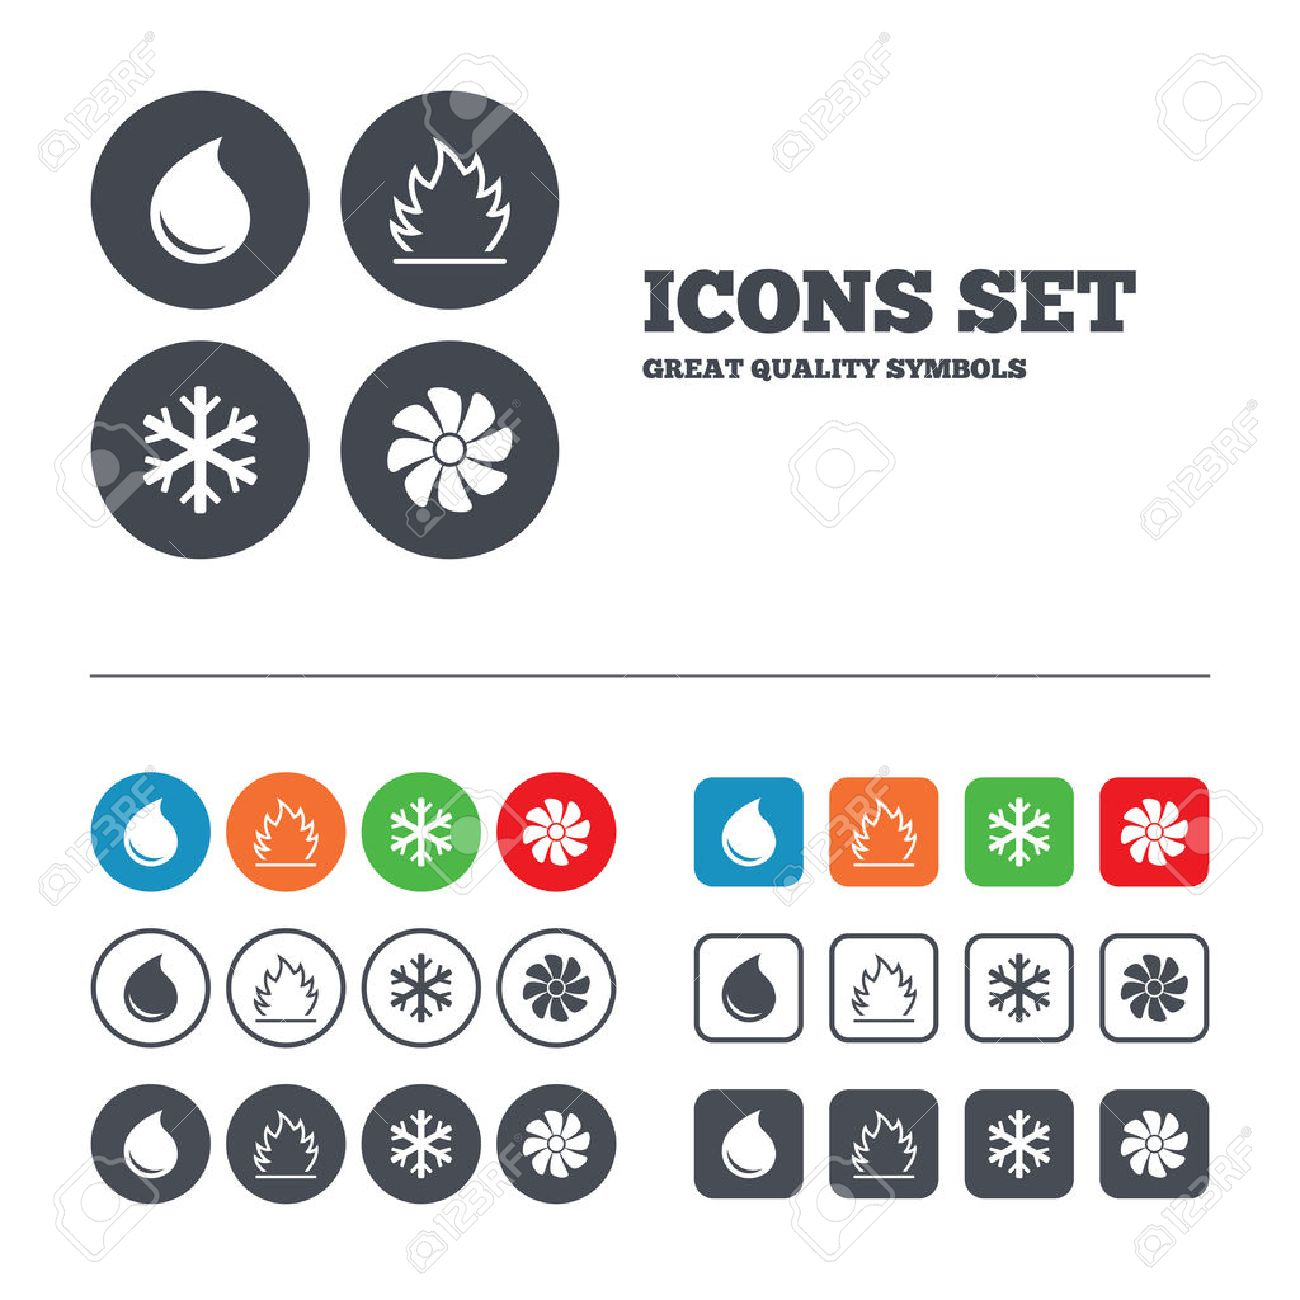 1397 Hvac Cliparts Stock Vector And Royalty Free Illustrations Drawing Symbols Icons Heating Ventilating Air Conditioning Water Supply Climate Control